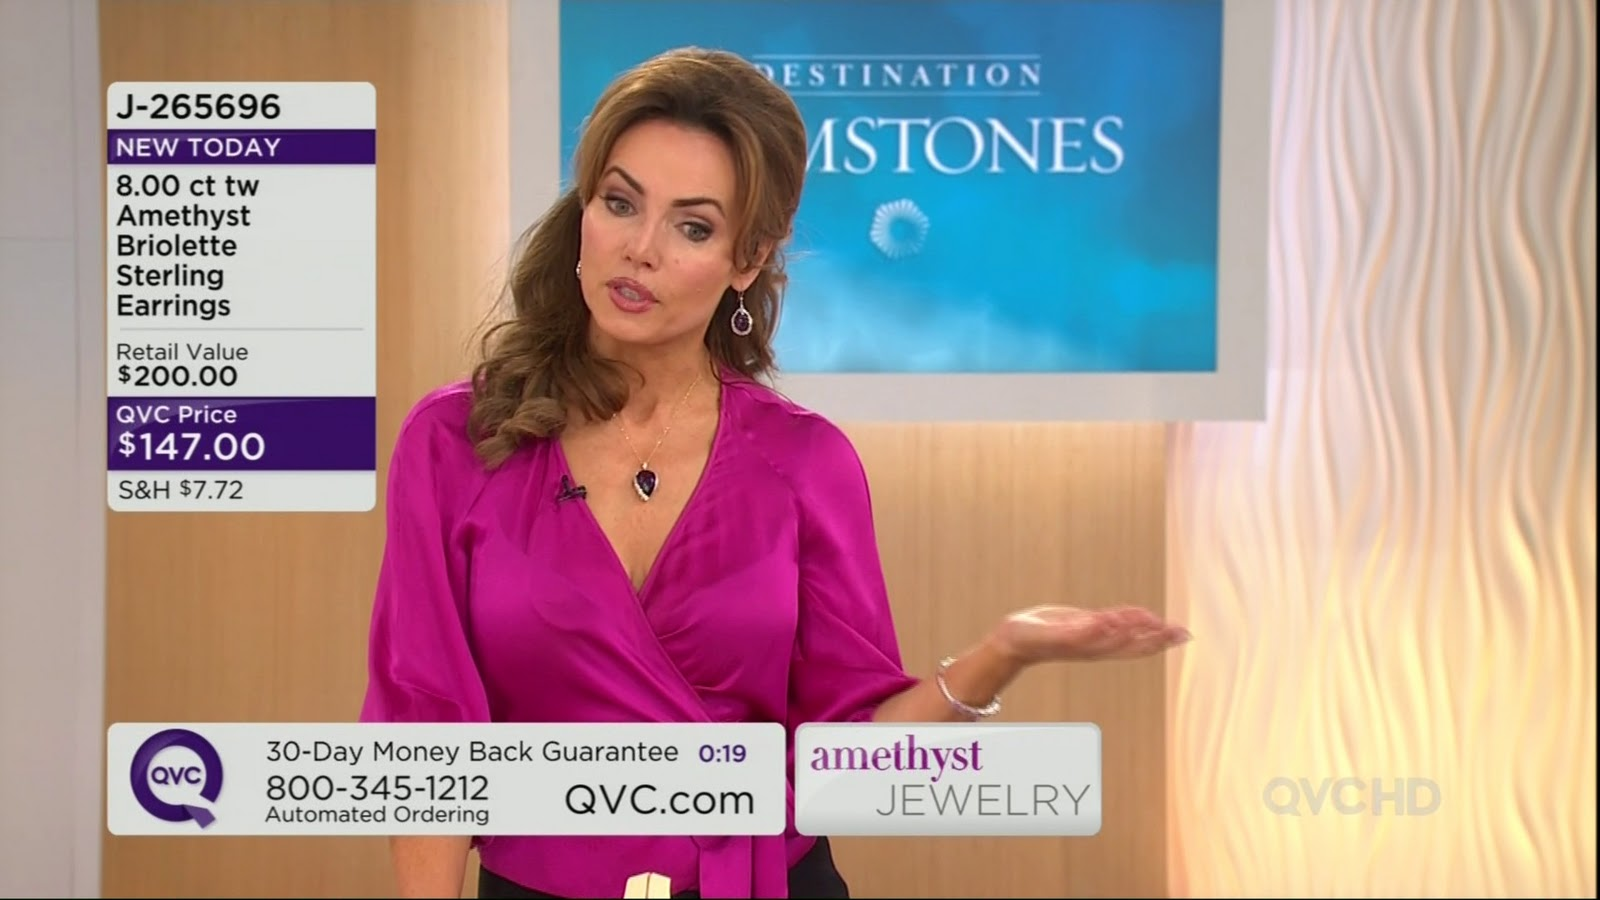 She is a host on QVC. that's it for today. until next time.